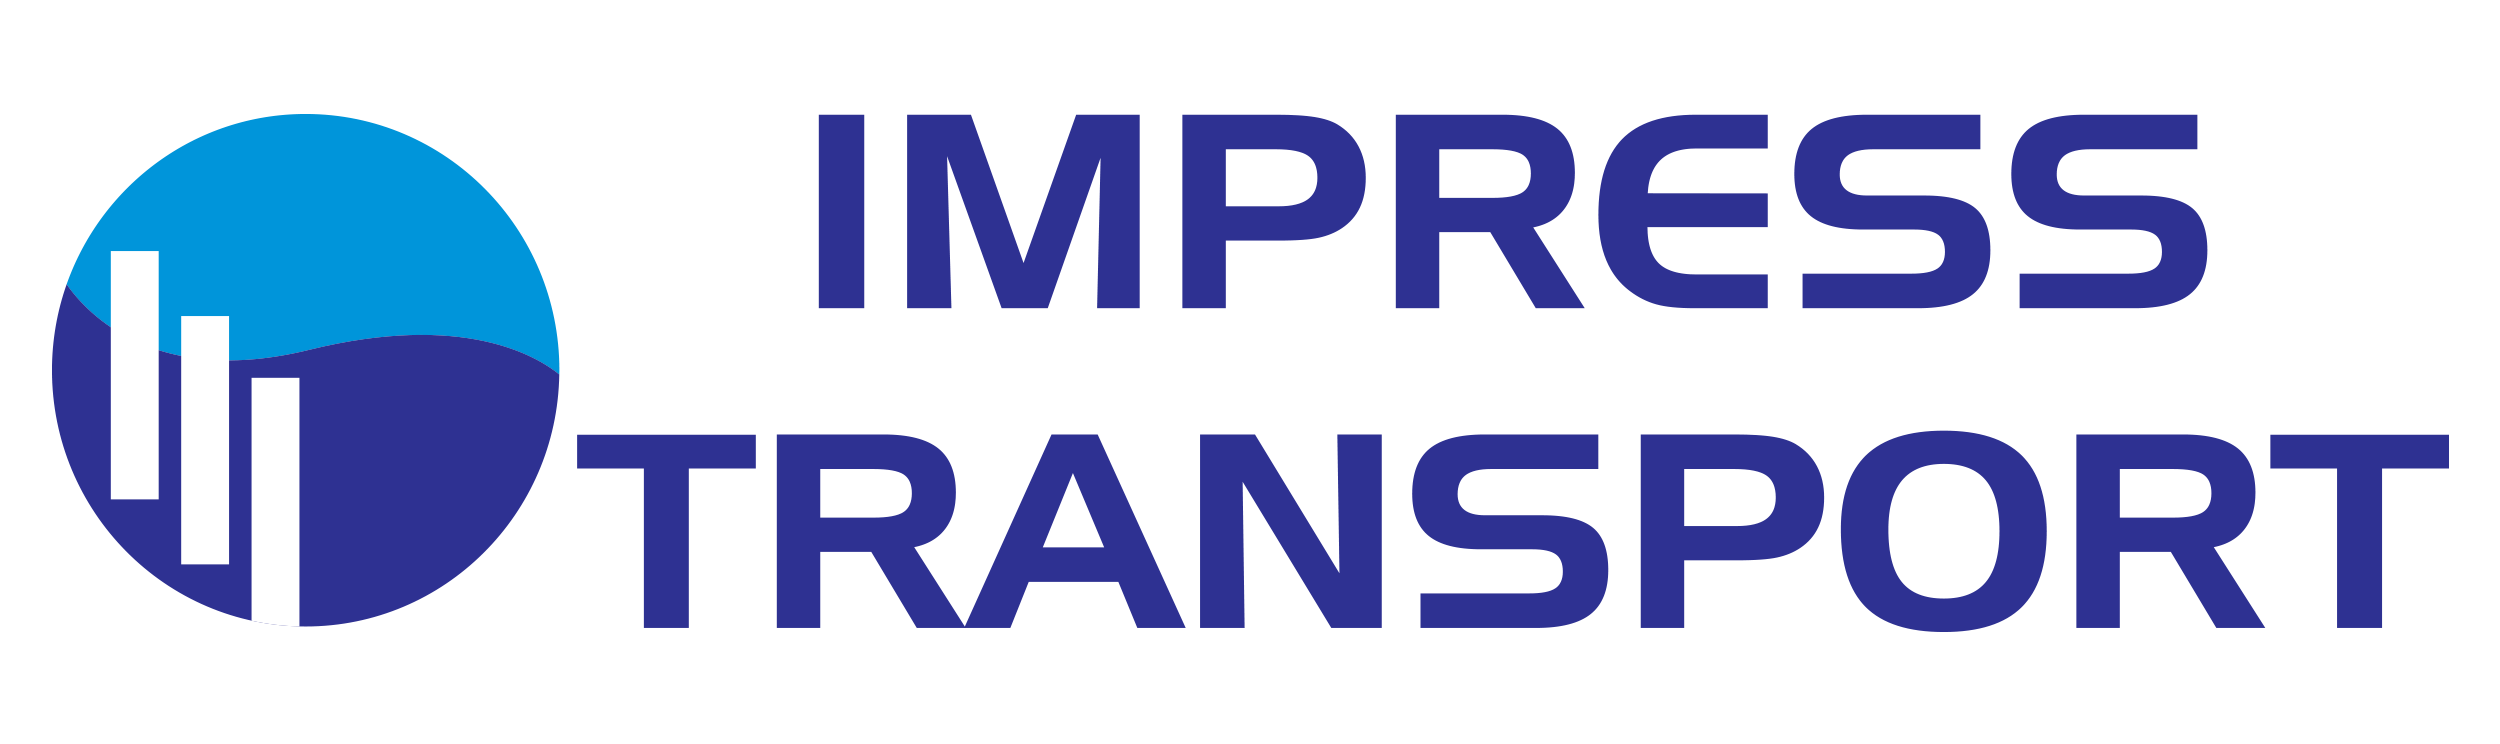 Impress Transport